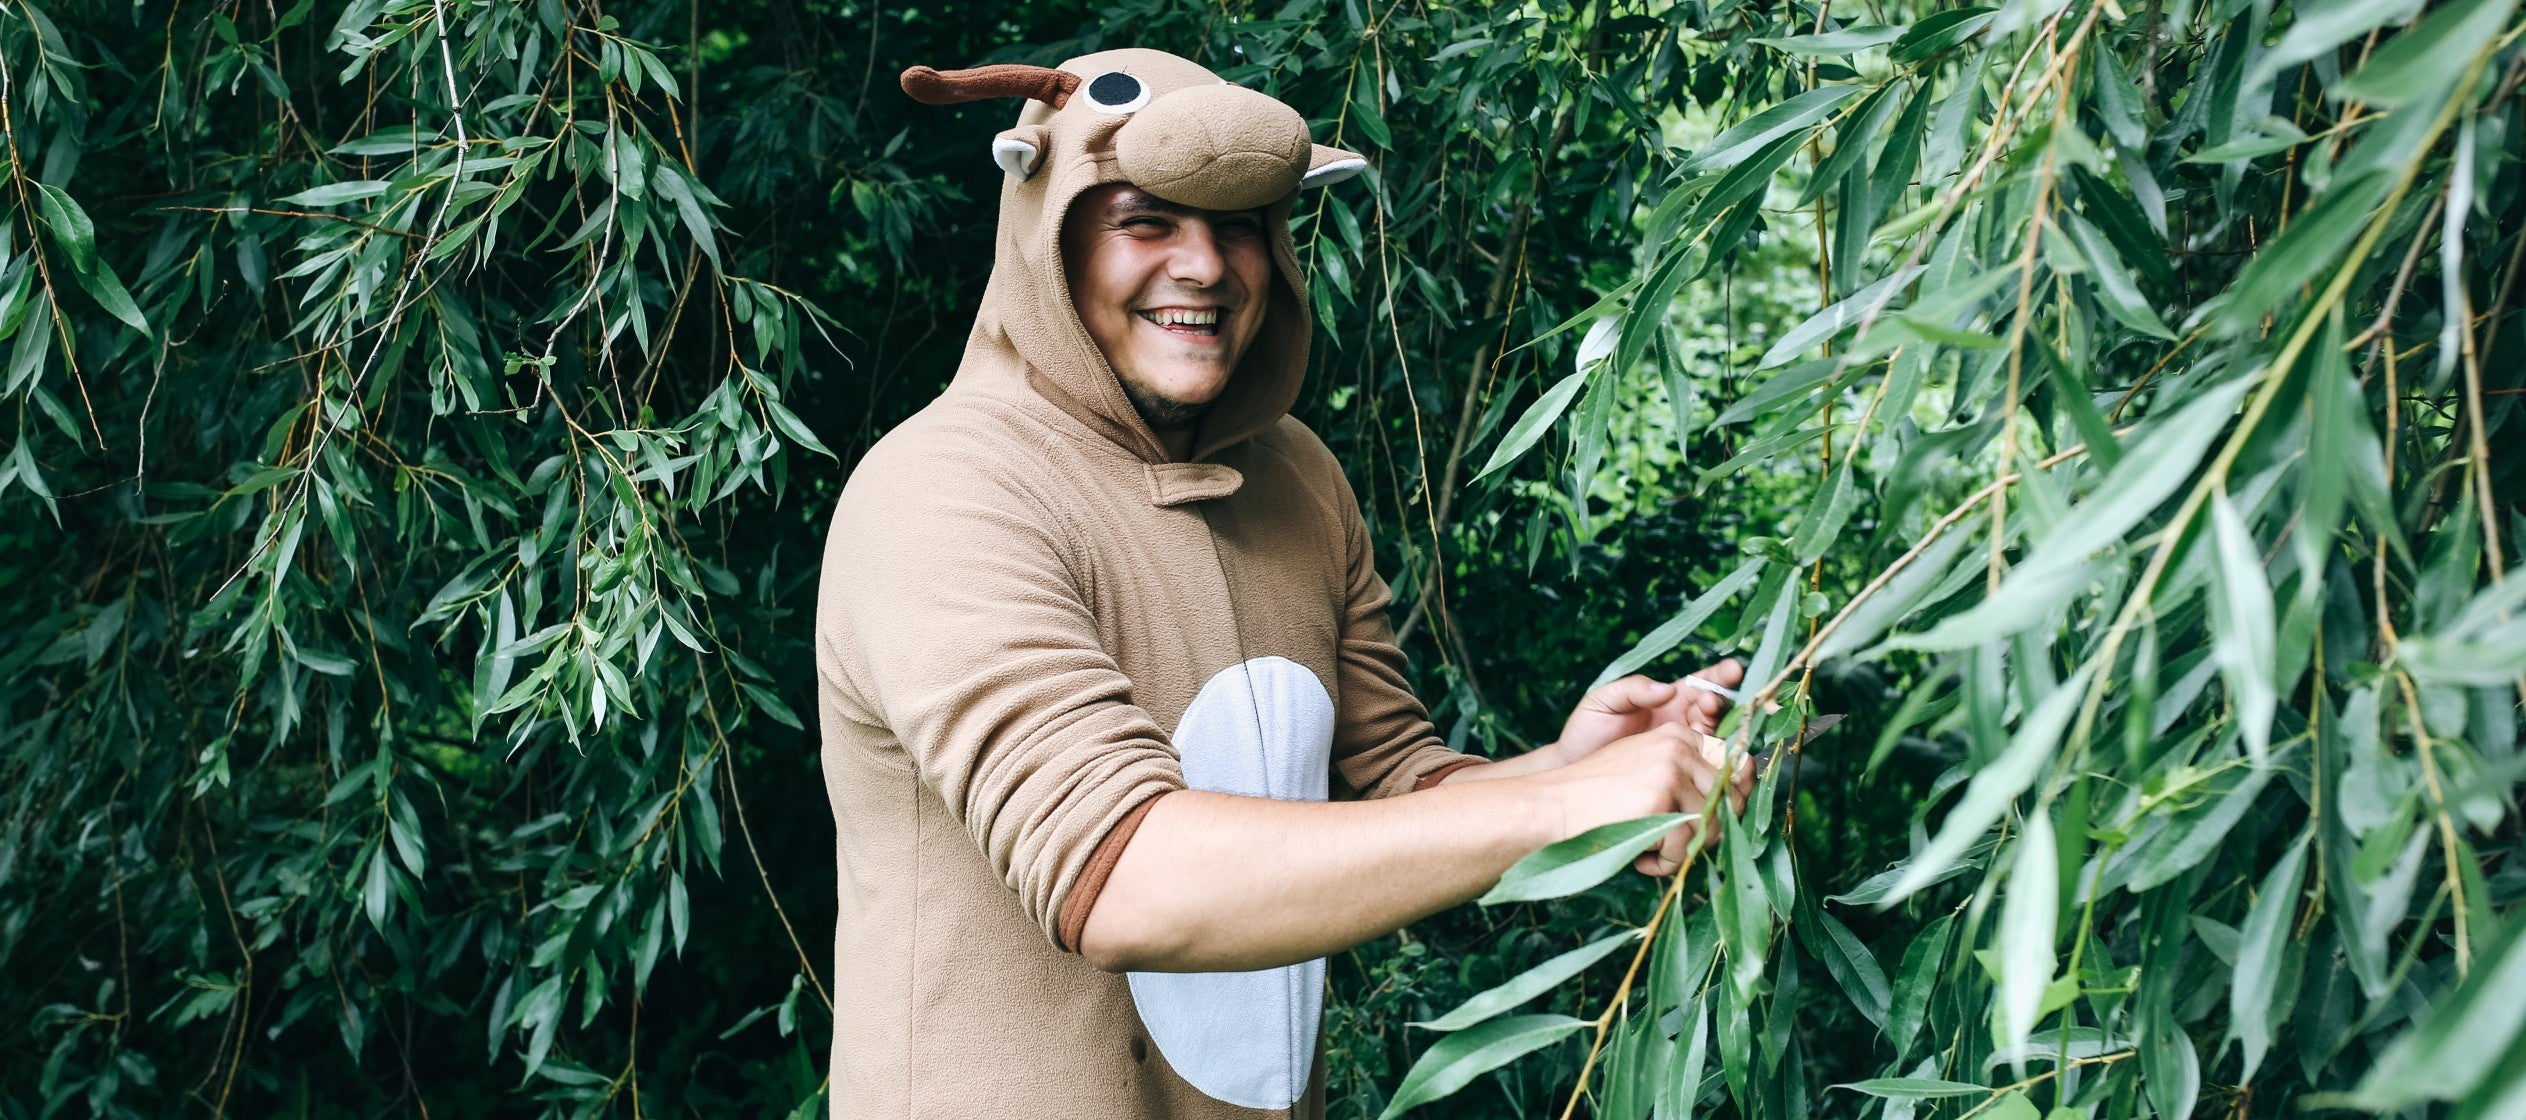 17 Outdoorsy Costume Ideas (That You Might Have in Your Closet)